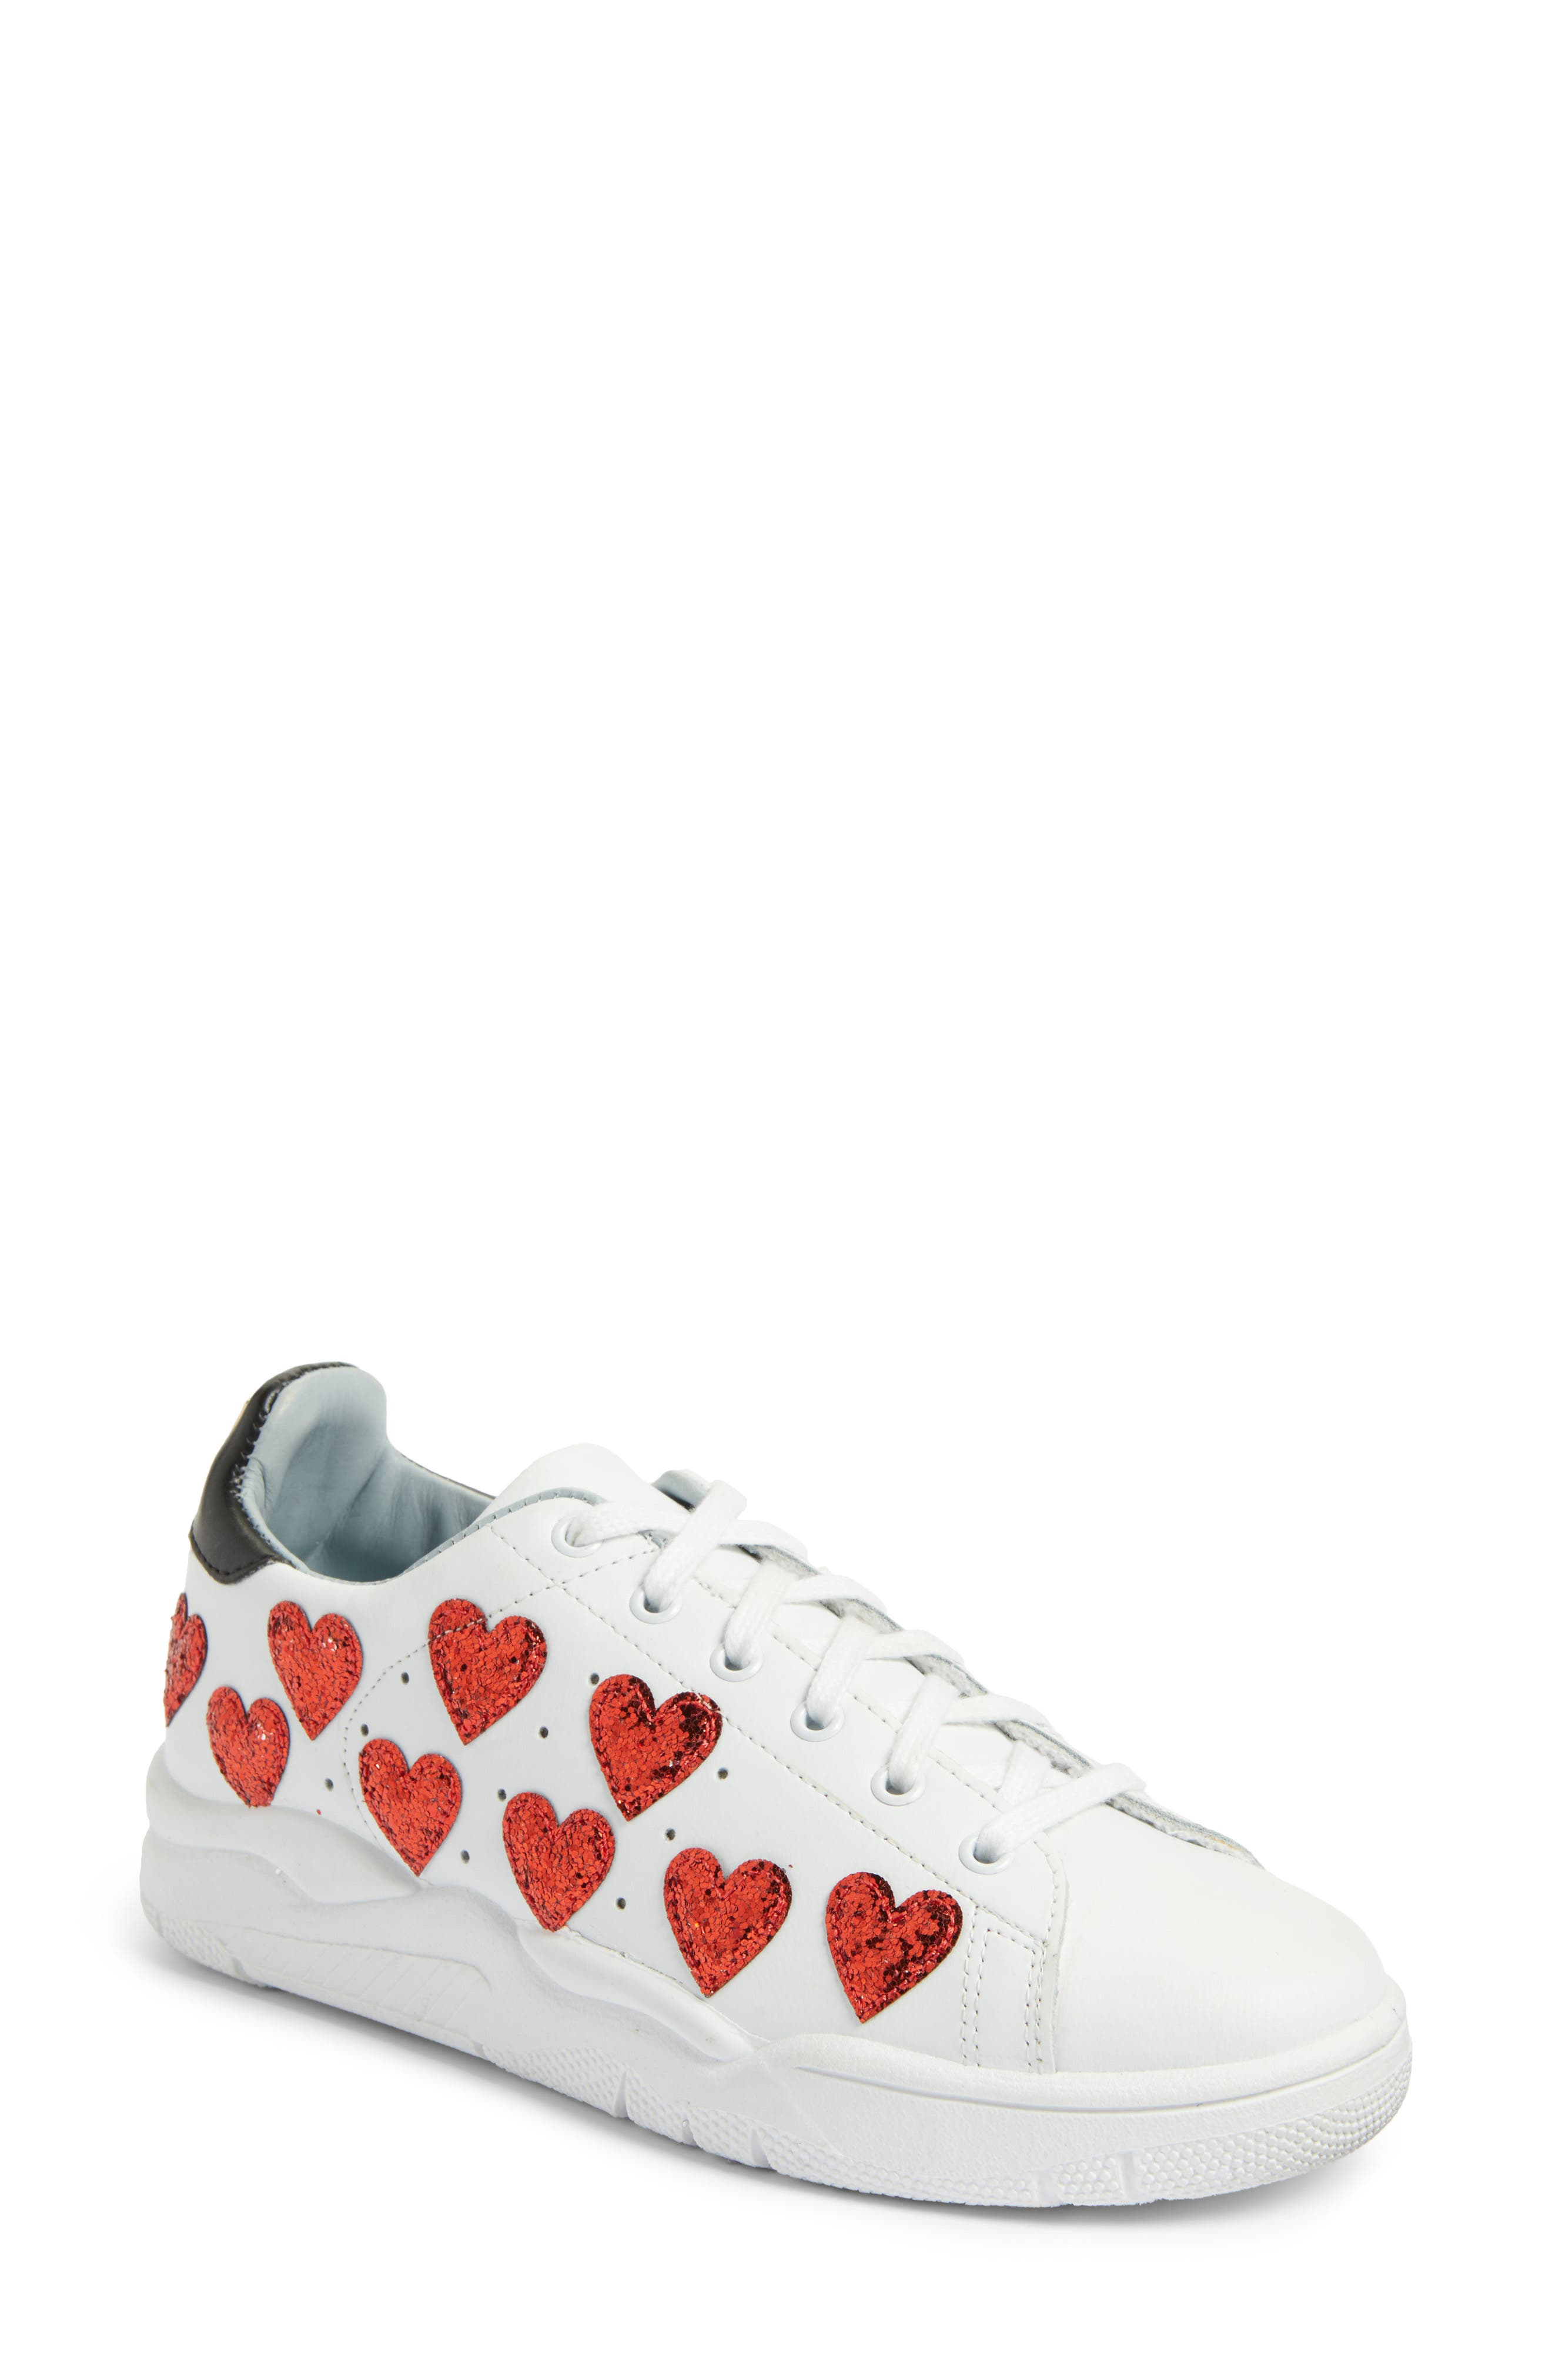 Hearts Roger Sneaker,                         Main,                         color, White/ Red